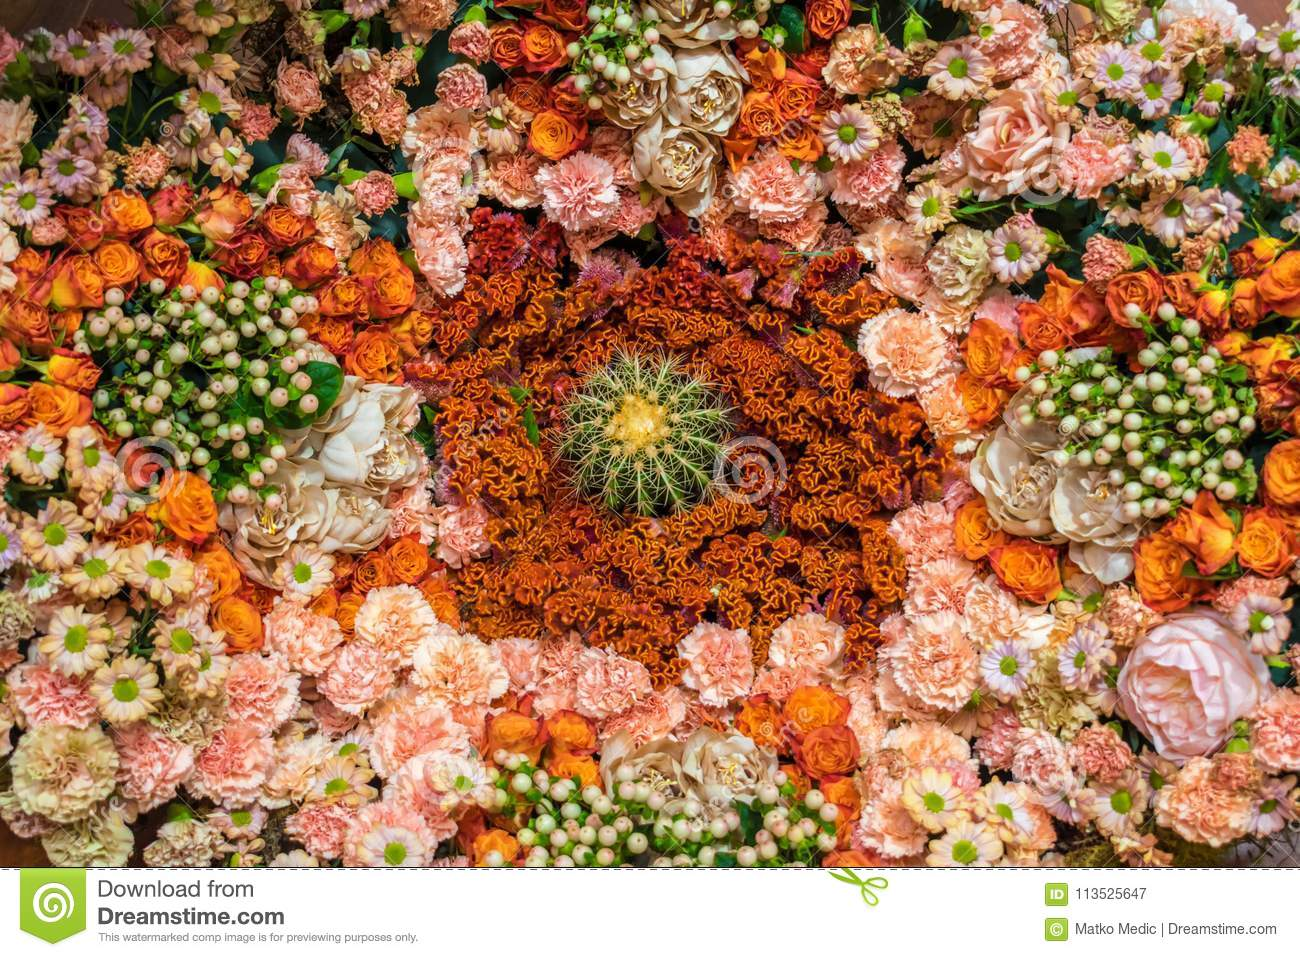 Orange and pink floral arrangement with cactus